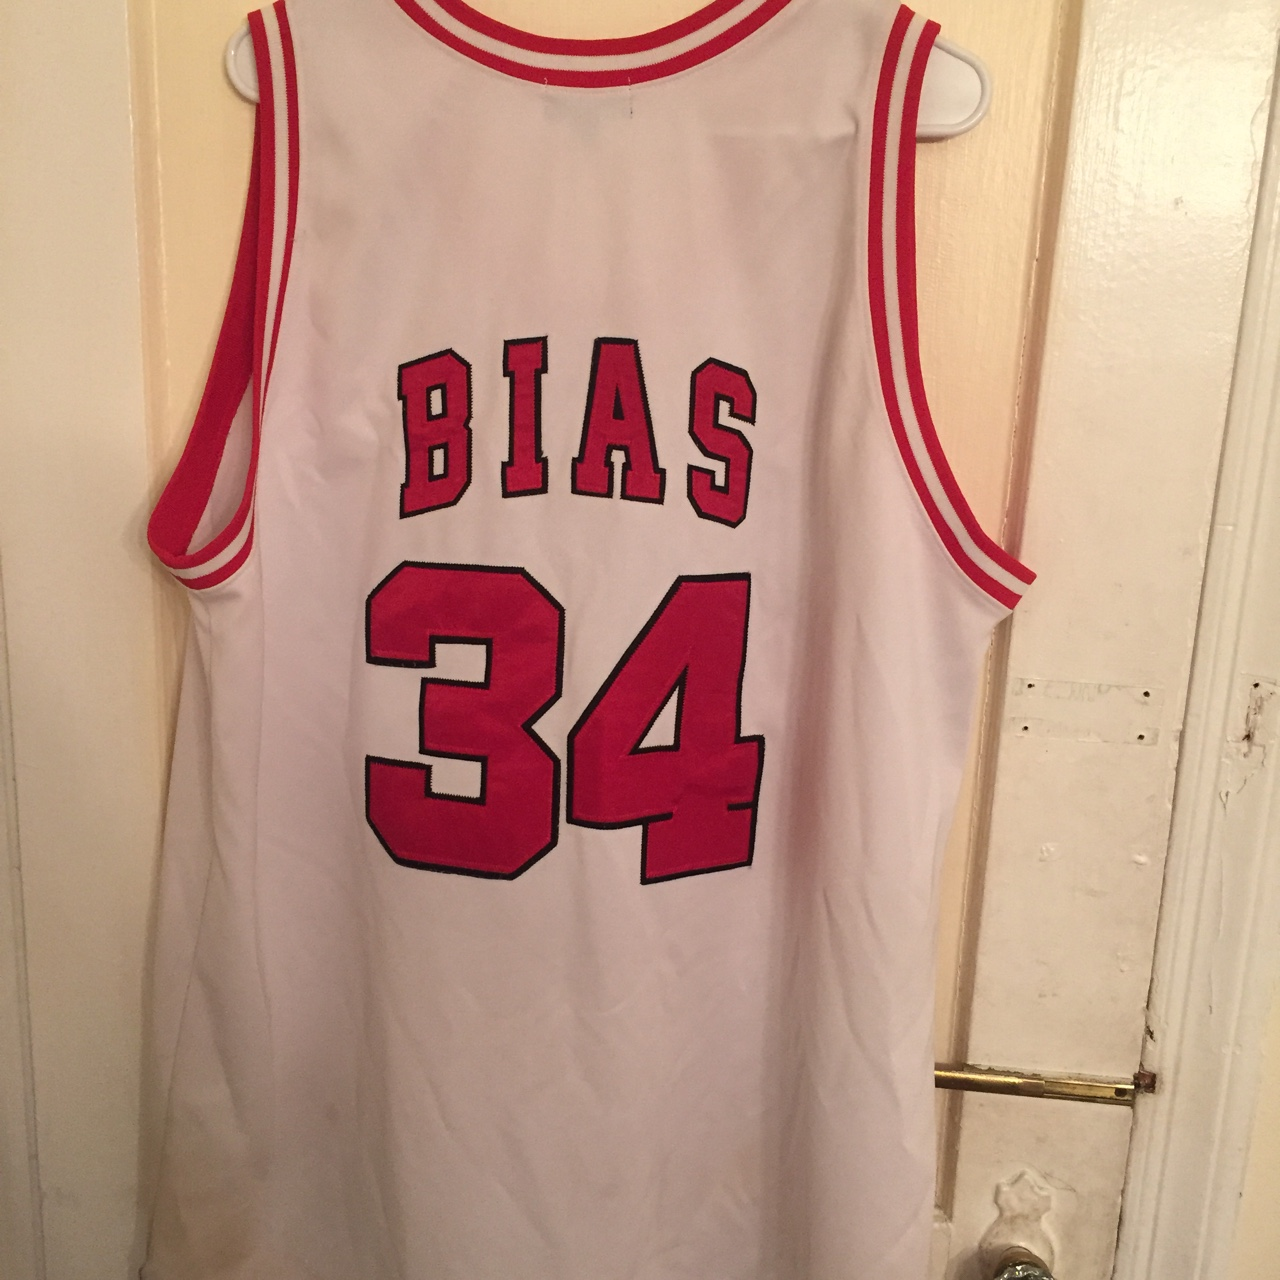 newest 04203 9ae02 100% Authentic Len Bias College Jersey - Depop